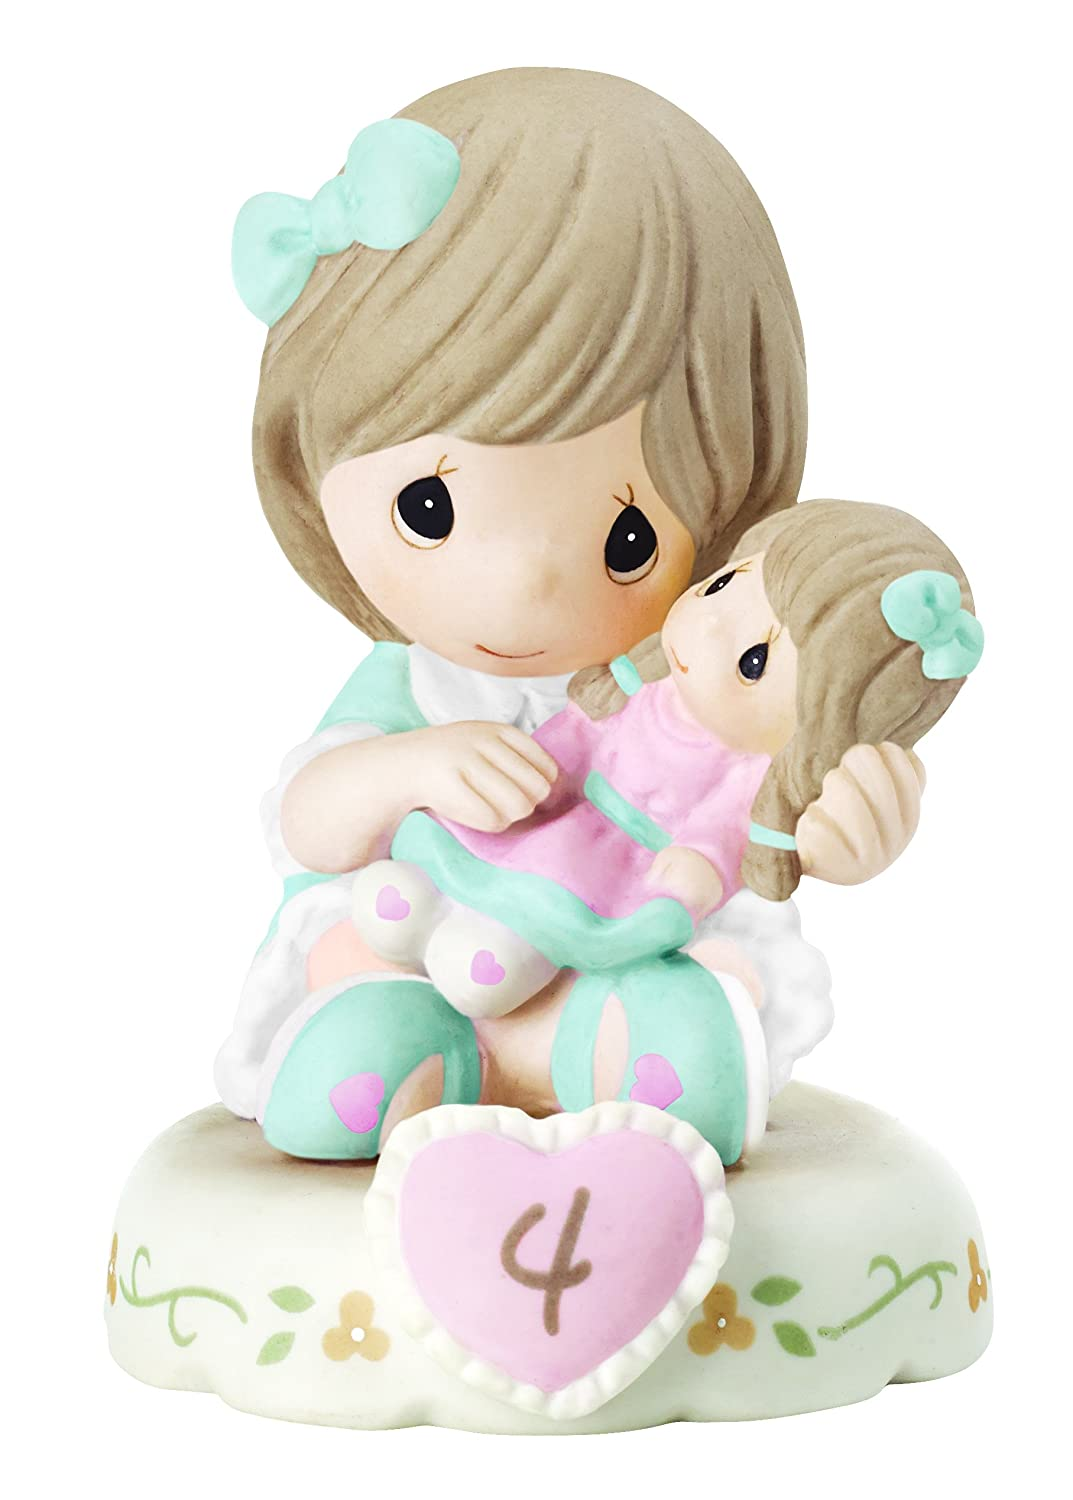 Precious Moments 152010Growing In Grace, Age 4 Girl Bisque Porcelain Figurine Birthday Gift, Blonde Precious Moments Company Inc.